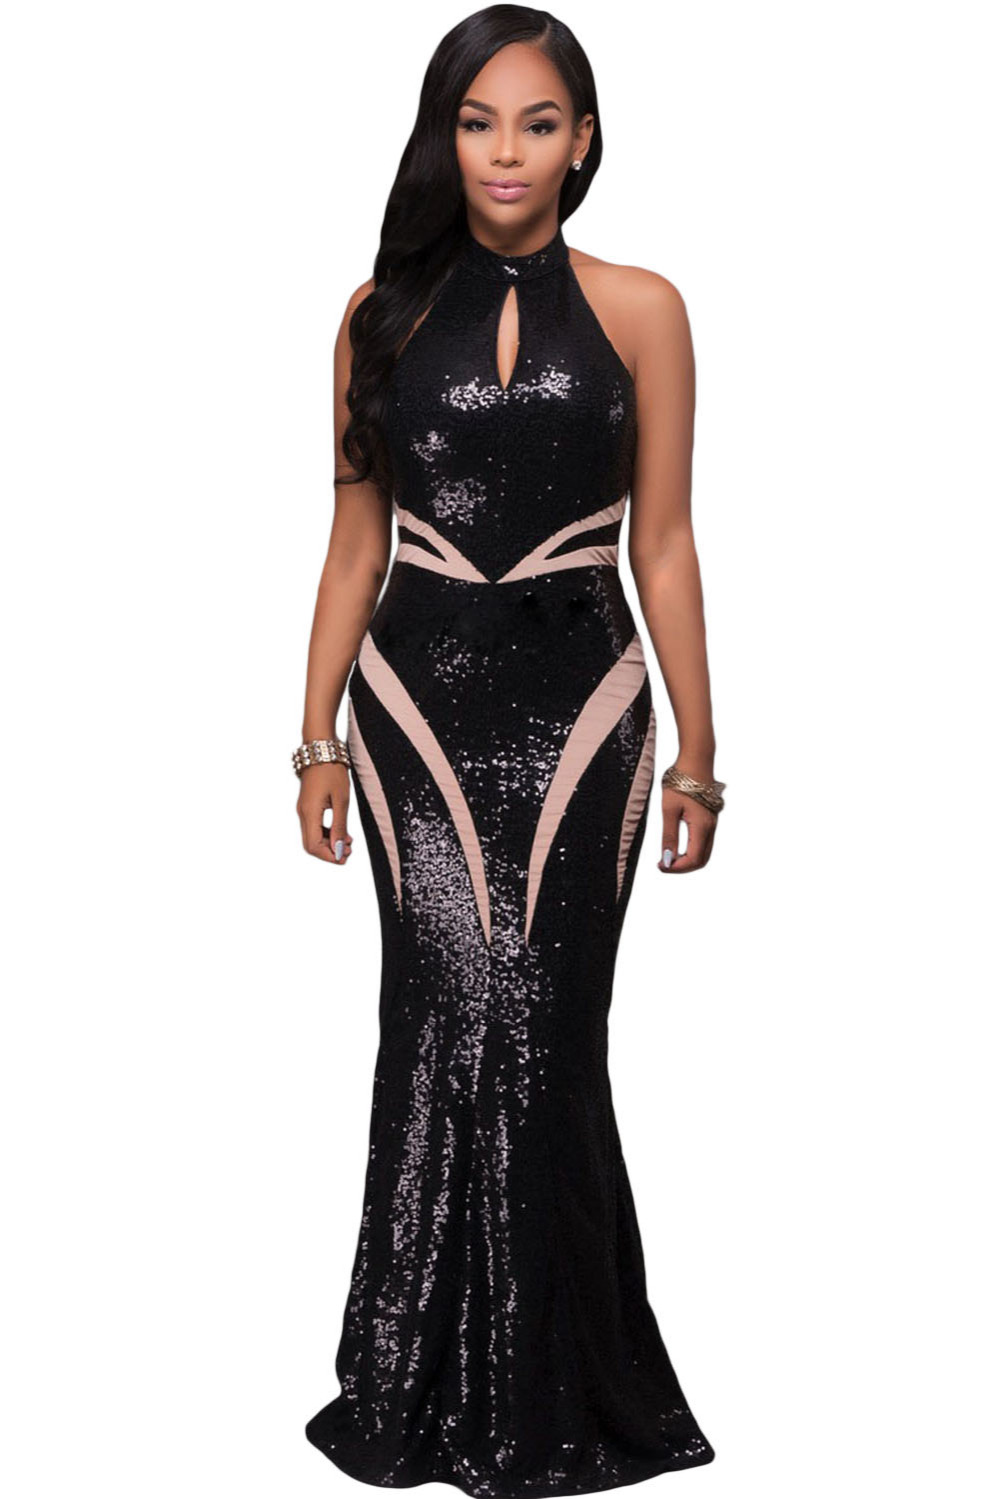 Black dress for prom night - New Women Elegant Sexy Stretch Bodycon Prom Cocktail Graduation Night Gown Black High Neck Keyhole Sequin Long Party Dress 61414